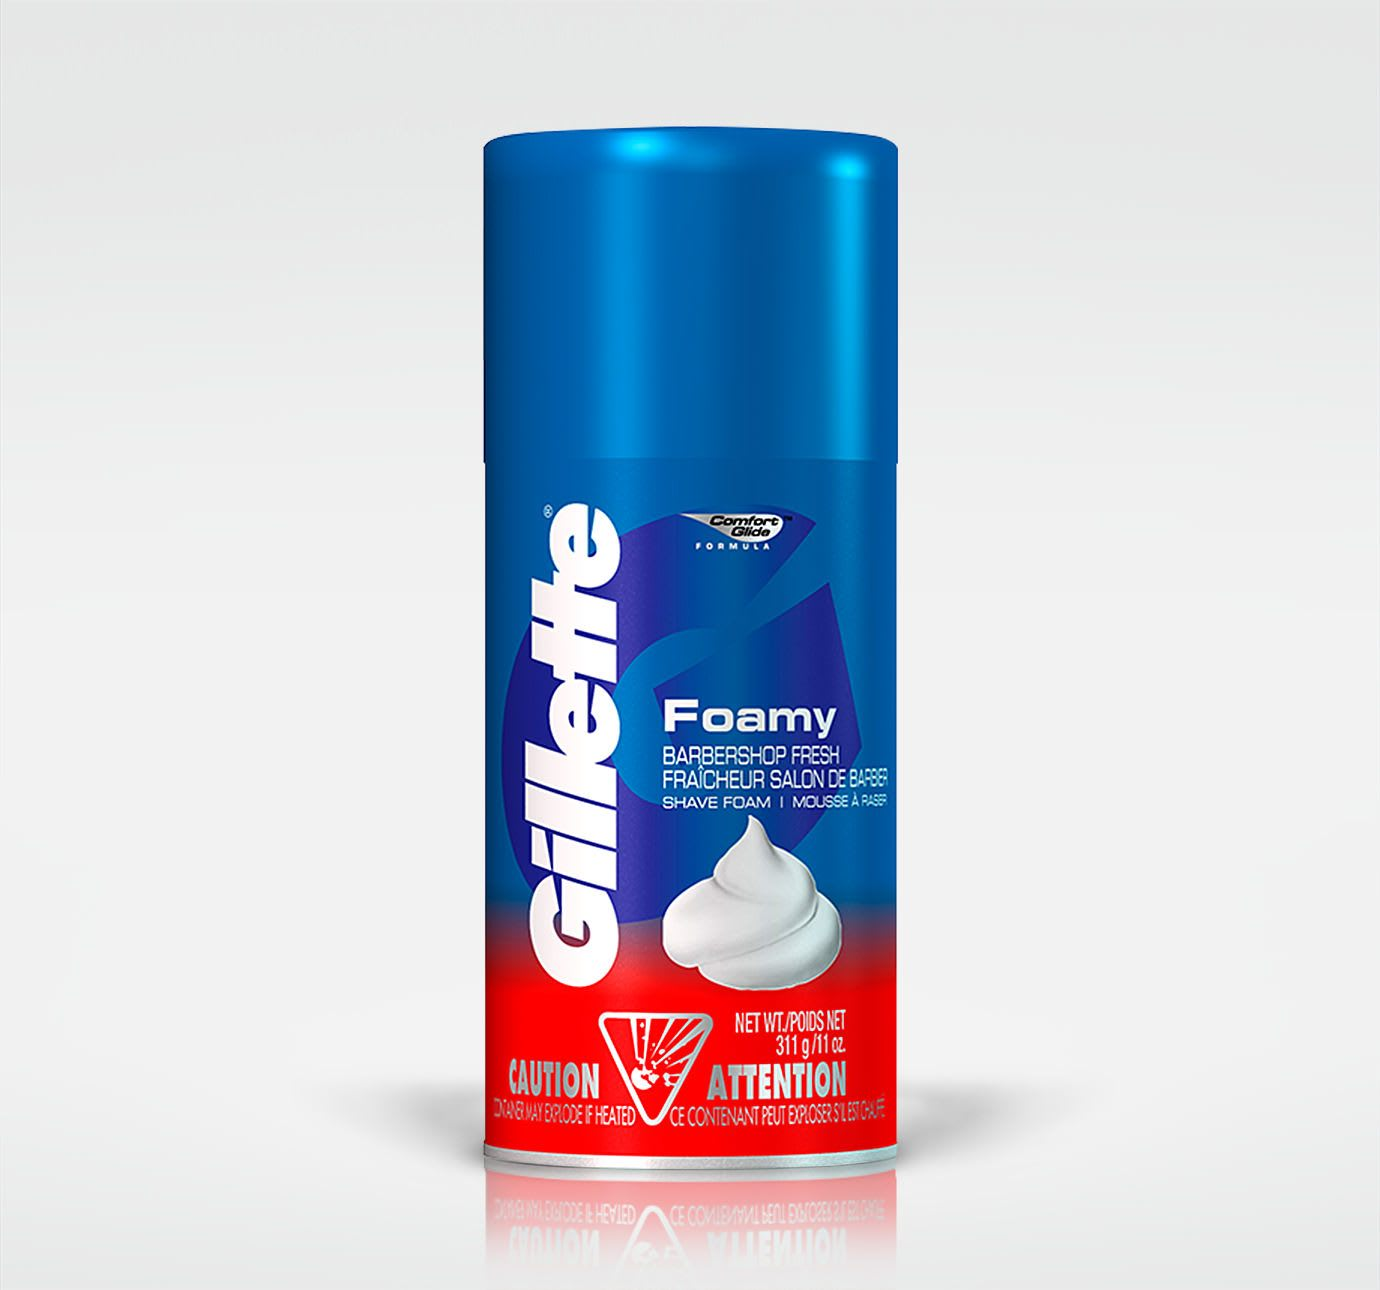 gillette-foamy-regular-shave-foam-barbershop-fresh-pkg